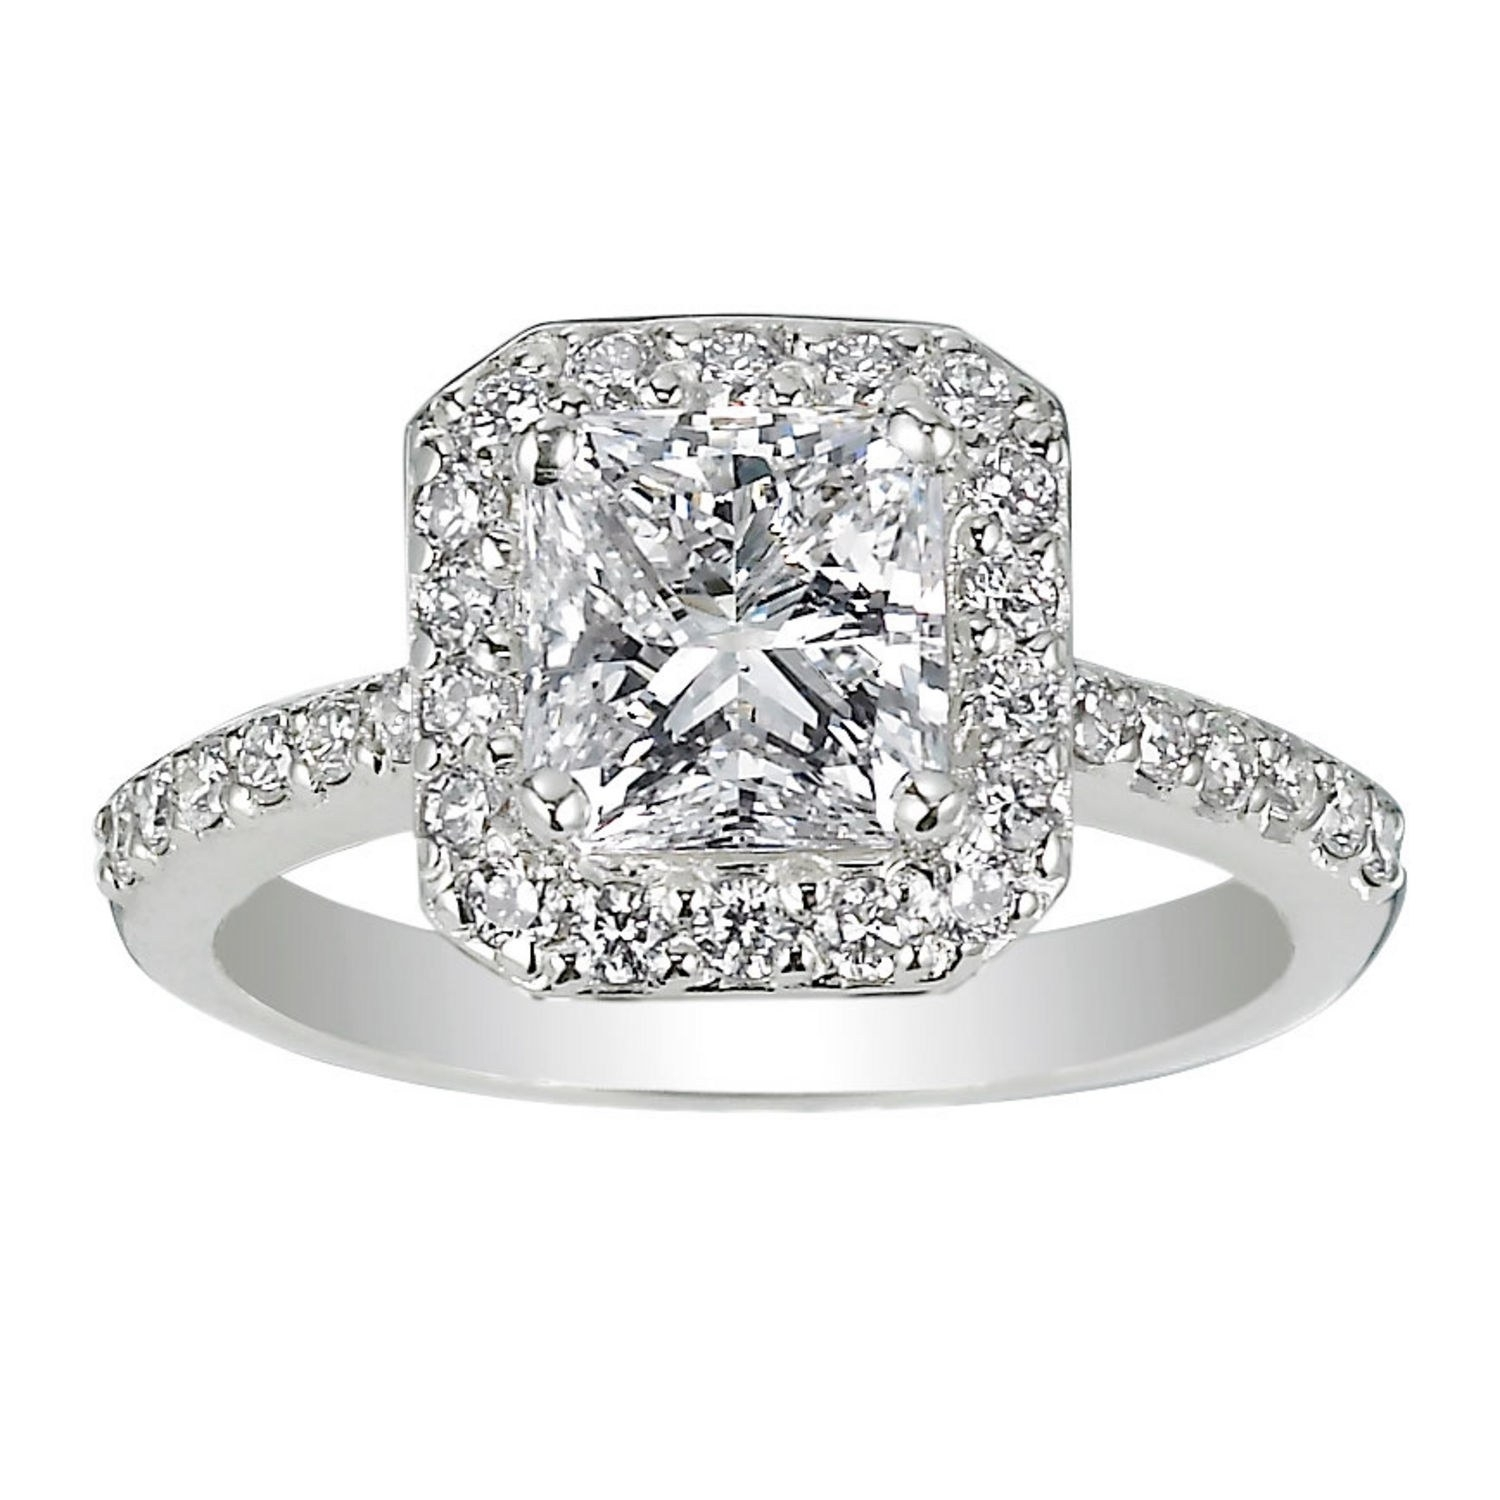 62 Diamond Engagement Rings Under $5,000 | Glamour Intended For Most Recent Diamond Frame Vintage Style Engagement Rings (Gallery 4 of 15)